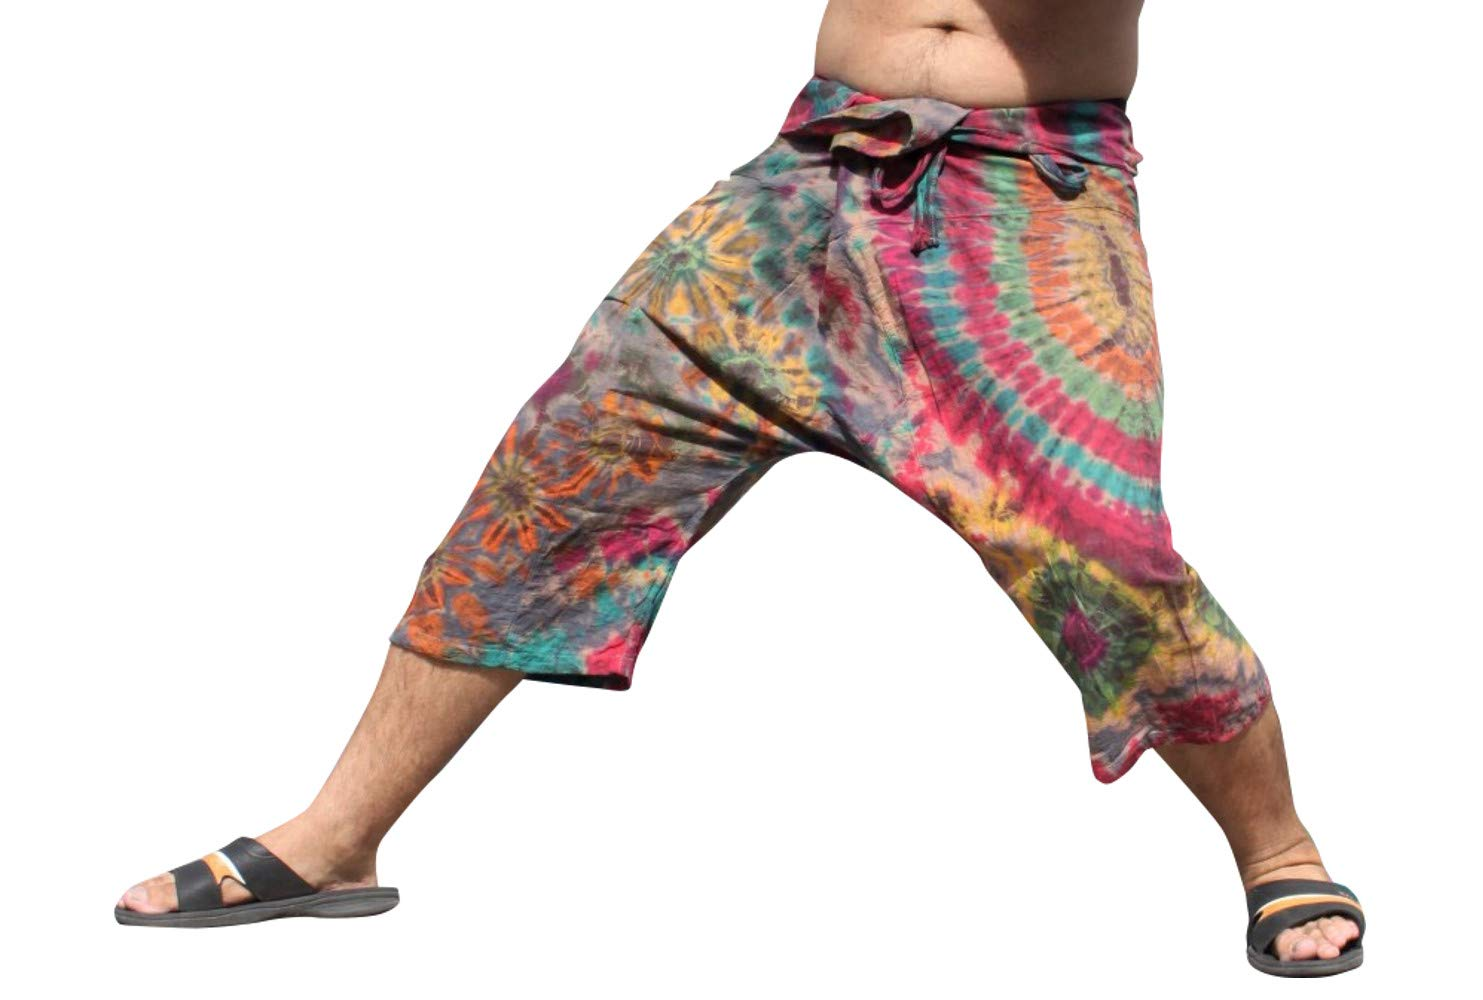 Full Funk Cotton Tie Dyed Natural Colorful Thai Fisherman Wrap 3/4 Leg Pants, Small, Orange Gray by Full Funk